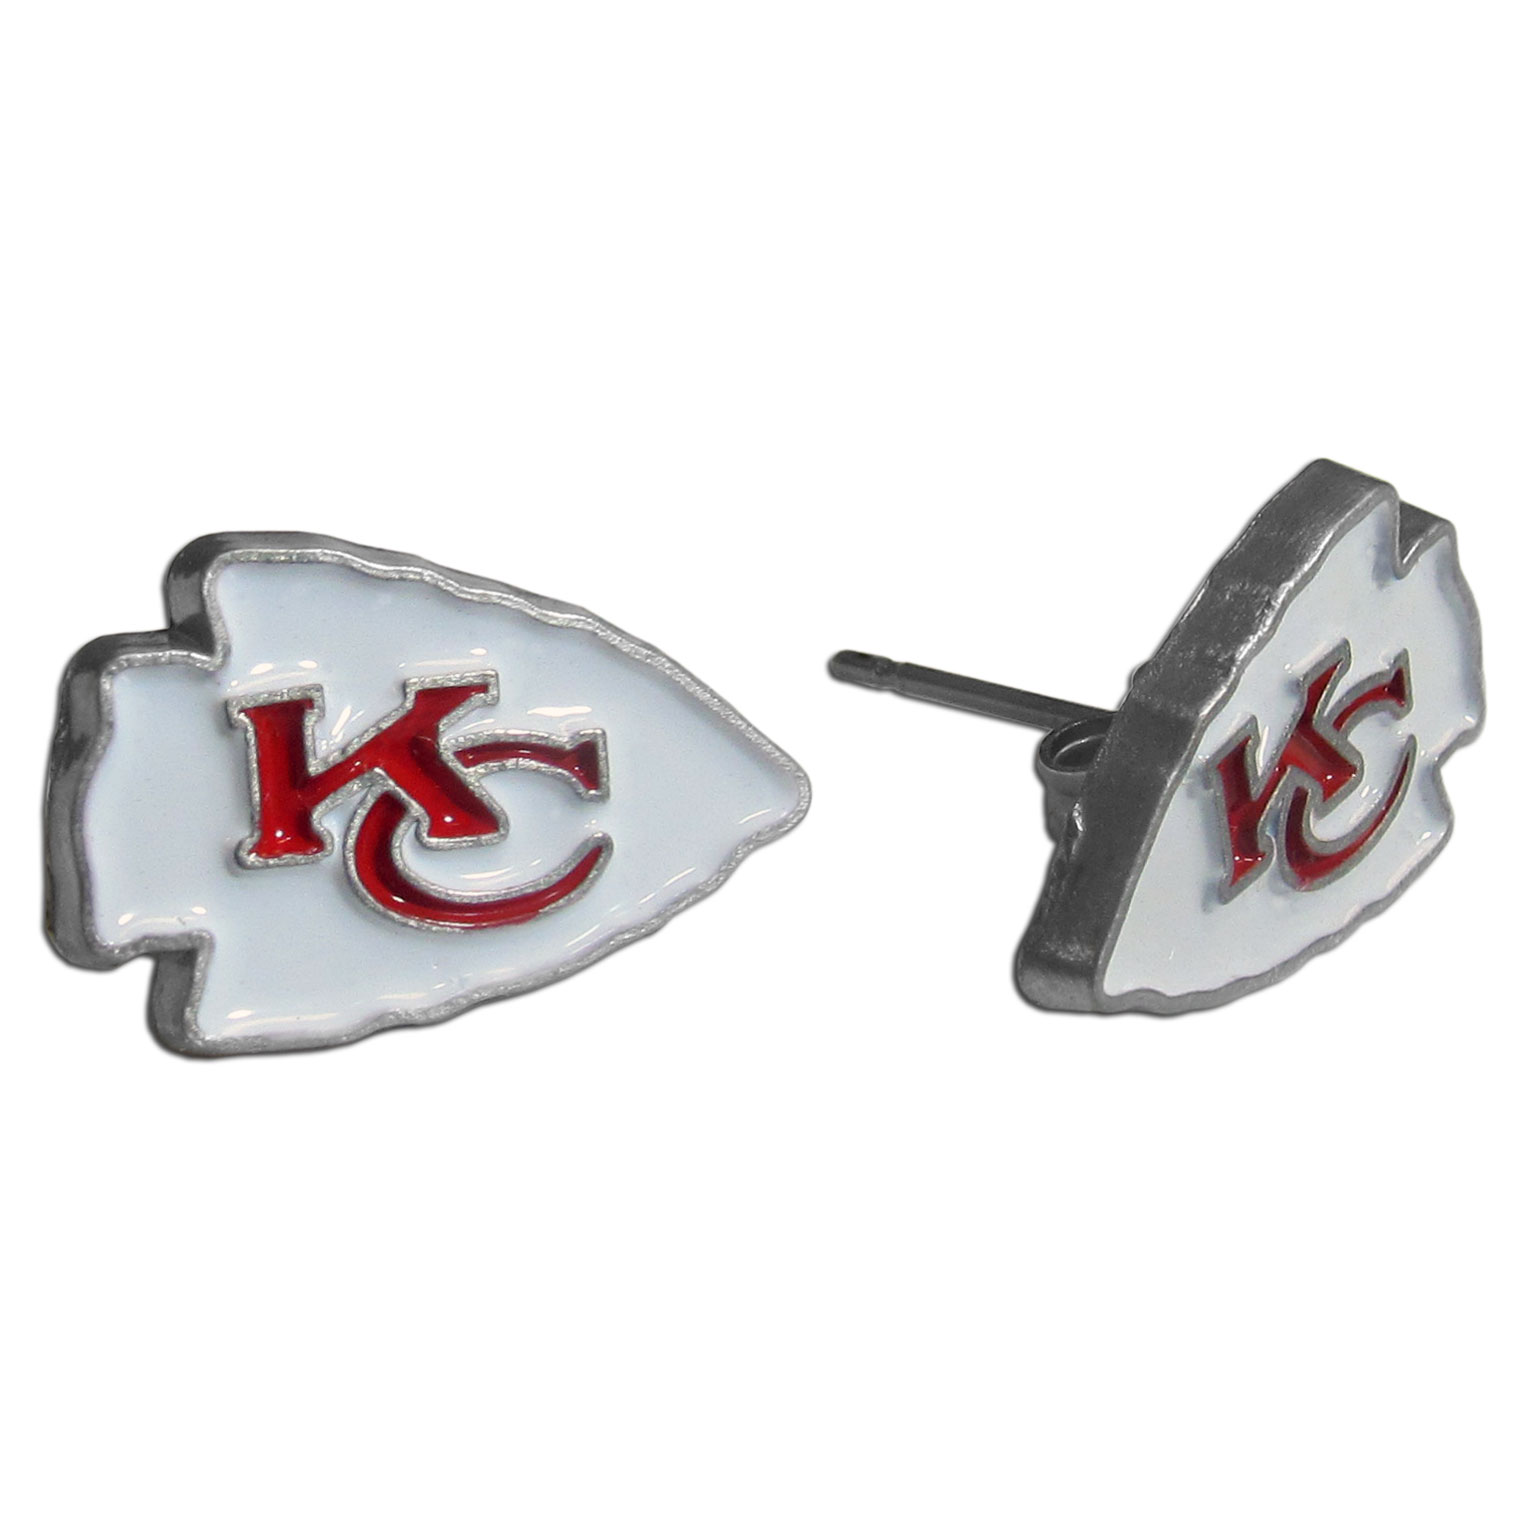 Studded NFL Earrings - Kansas City Chiefs - Our studded NFL team logo earrings are carved in 3D detail and enameled in team colors. Check out our entire line of licensed NFL  earrings! Officially licensed NFL product Licensee: Siskiyou Buckle Thank you for visiting CrazedOutSports.com